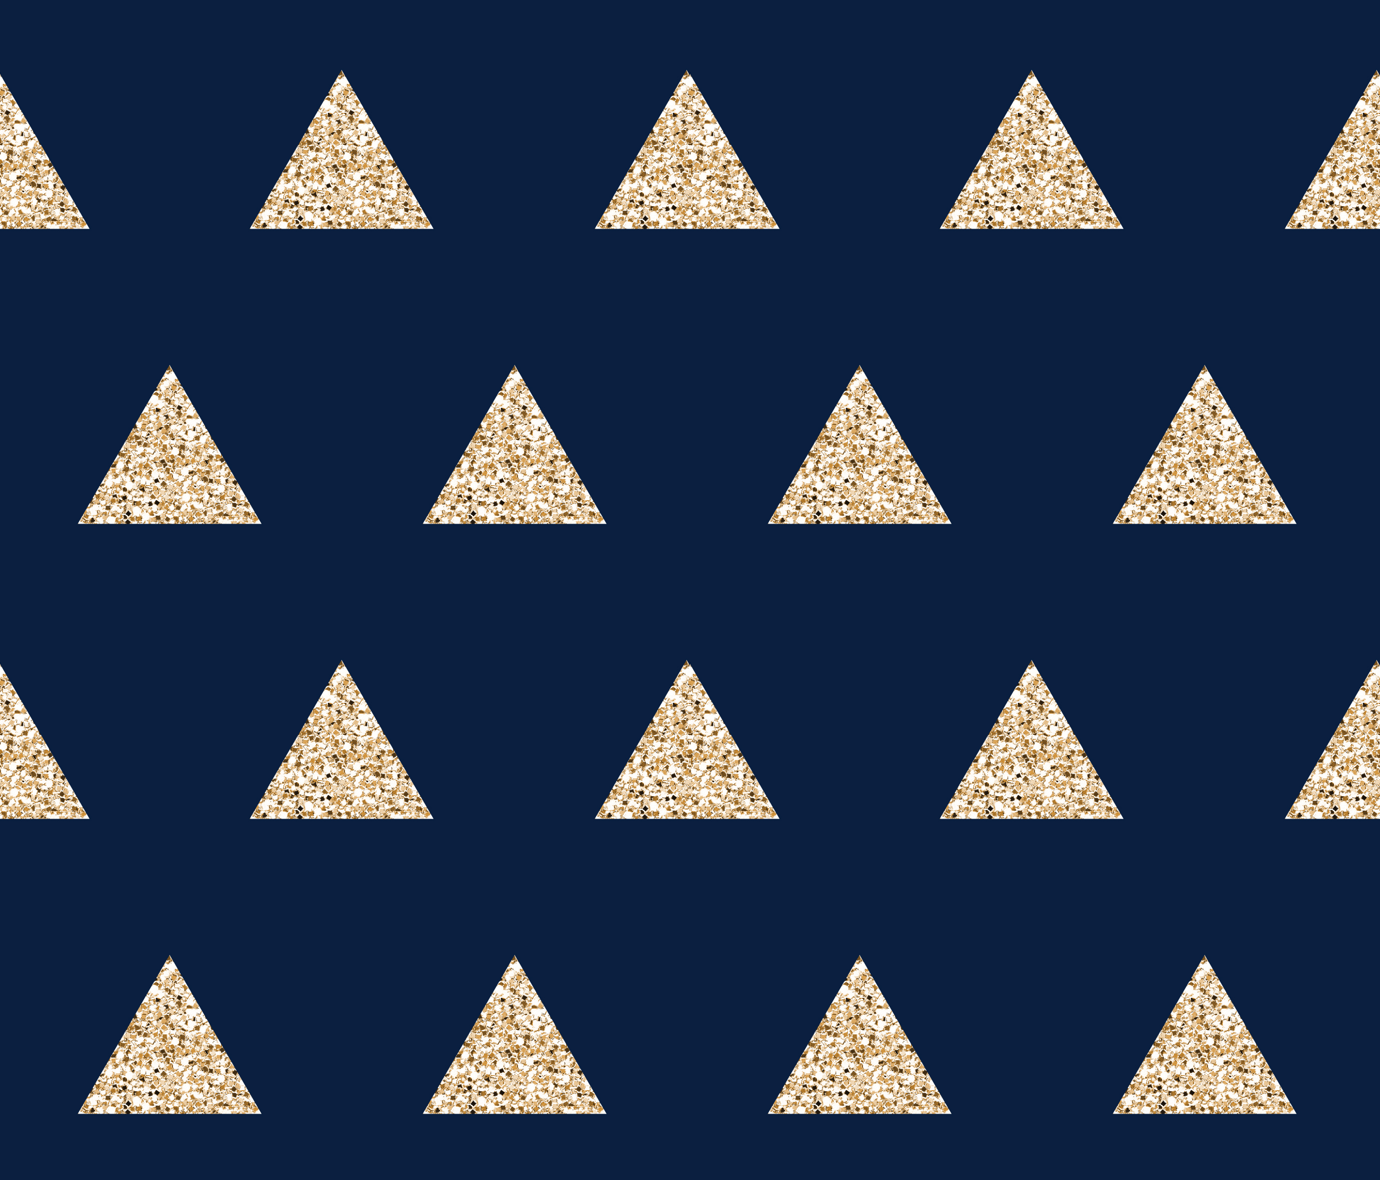 Navy Blue And Gold Wallpaper Navy blue and 1380x1180